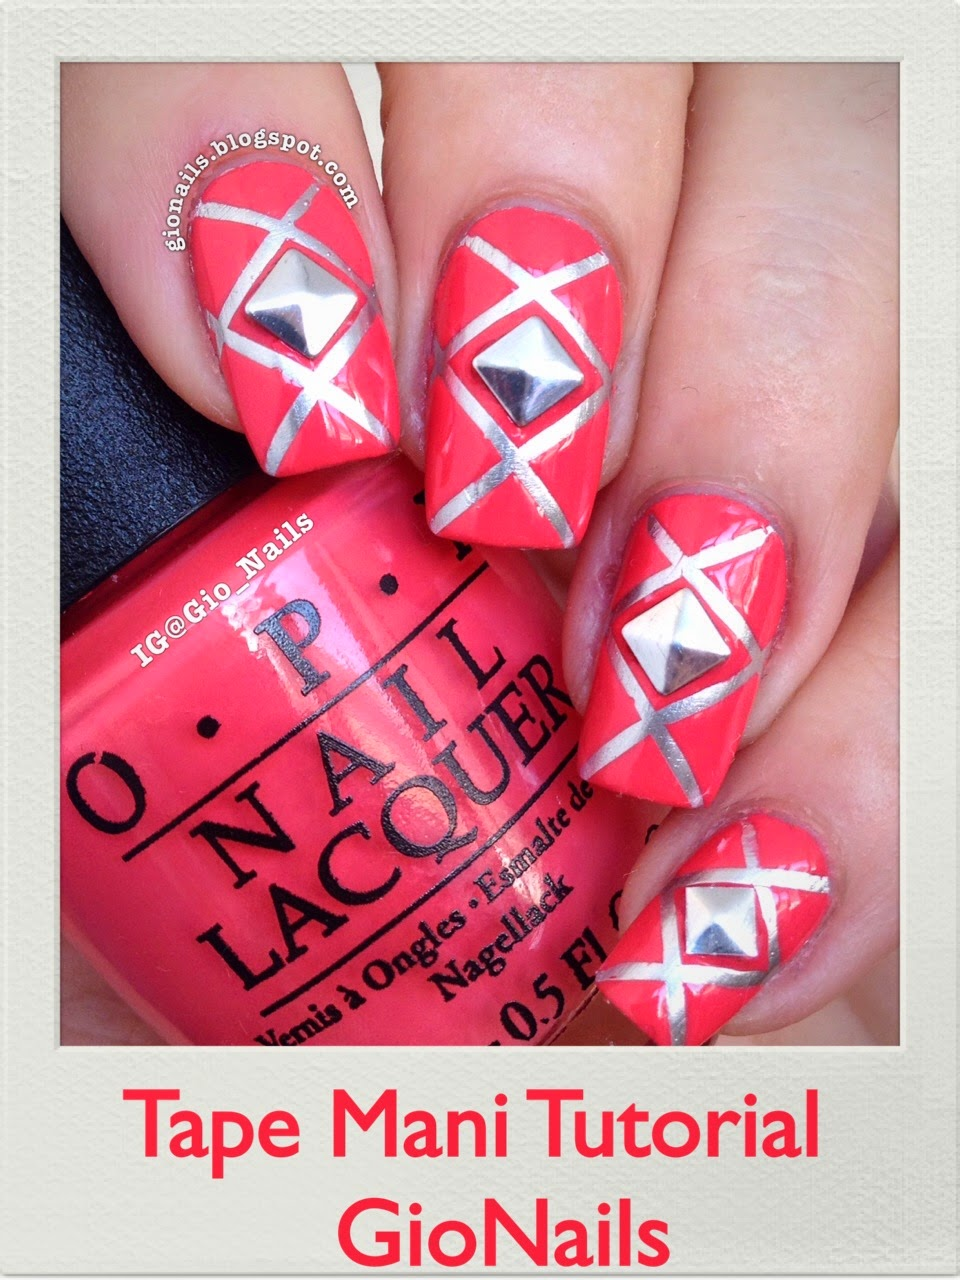 http://gionails.blogspot.be/2014/04/tape-mani-tutorial.html